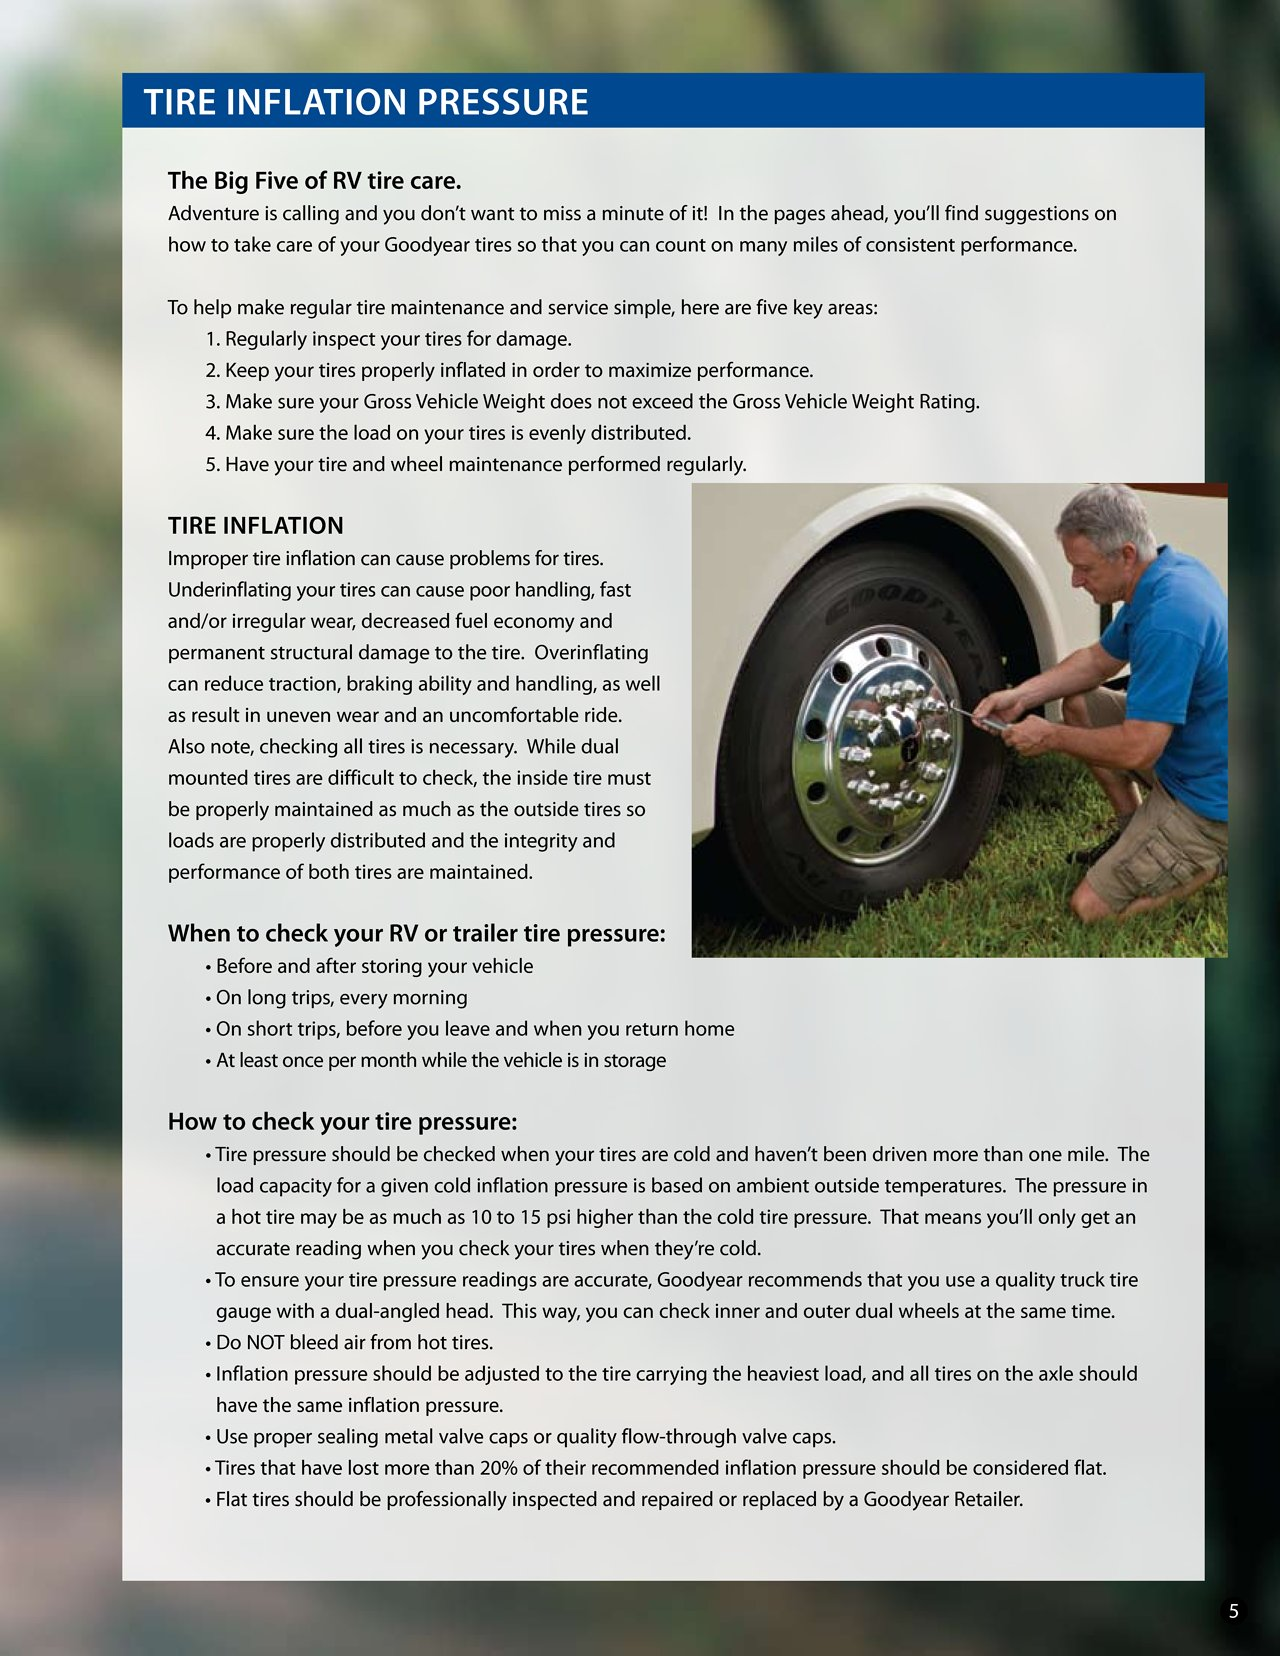 2010 Goodyear Rv Tire Care Guide Rv Brochures Download